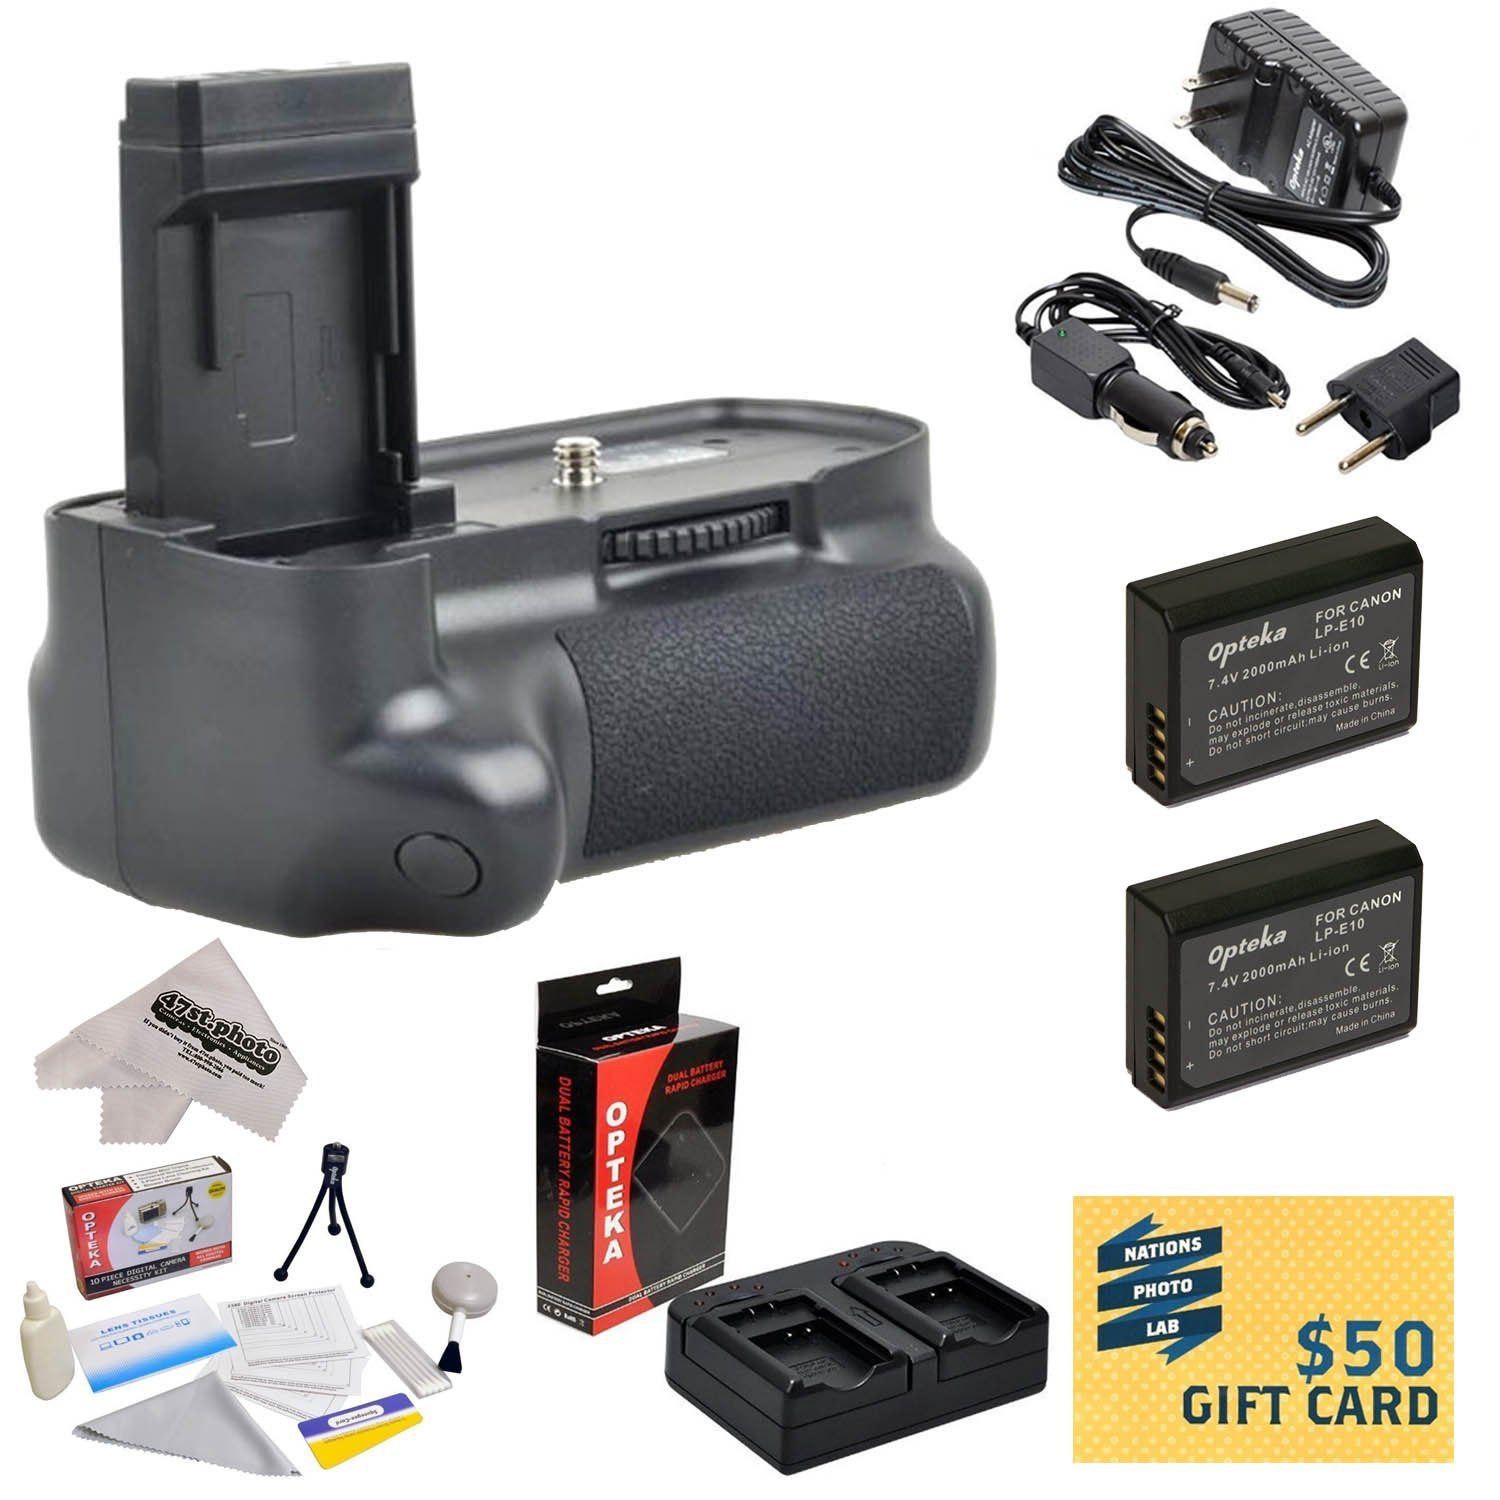 Professional Vertical Battery Grip With Sure Grip Technology For the Canon EOS Rebel T3 T5 DSLR with 2x LP-E10, Charger, Cleaning Kit, Screen Potectors, Mini Tripod, Microfiber Cloth, $50 Gift Card!